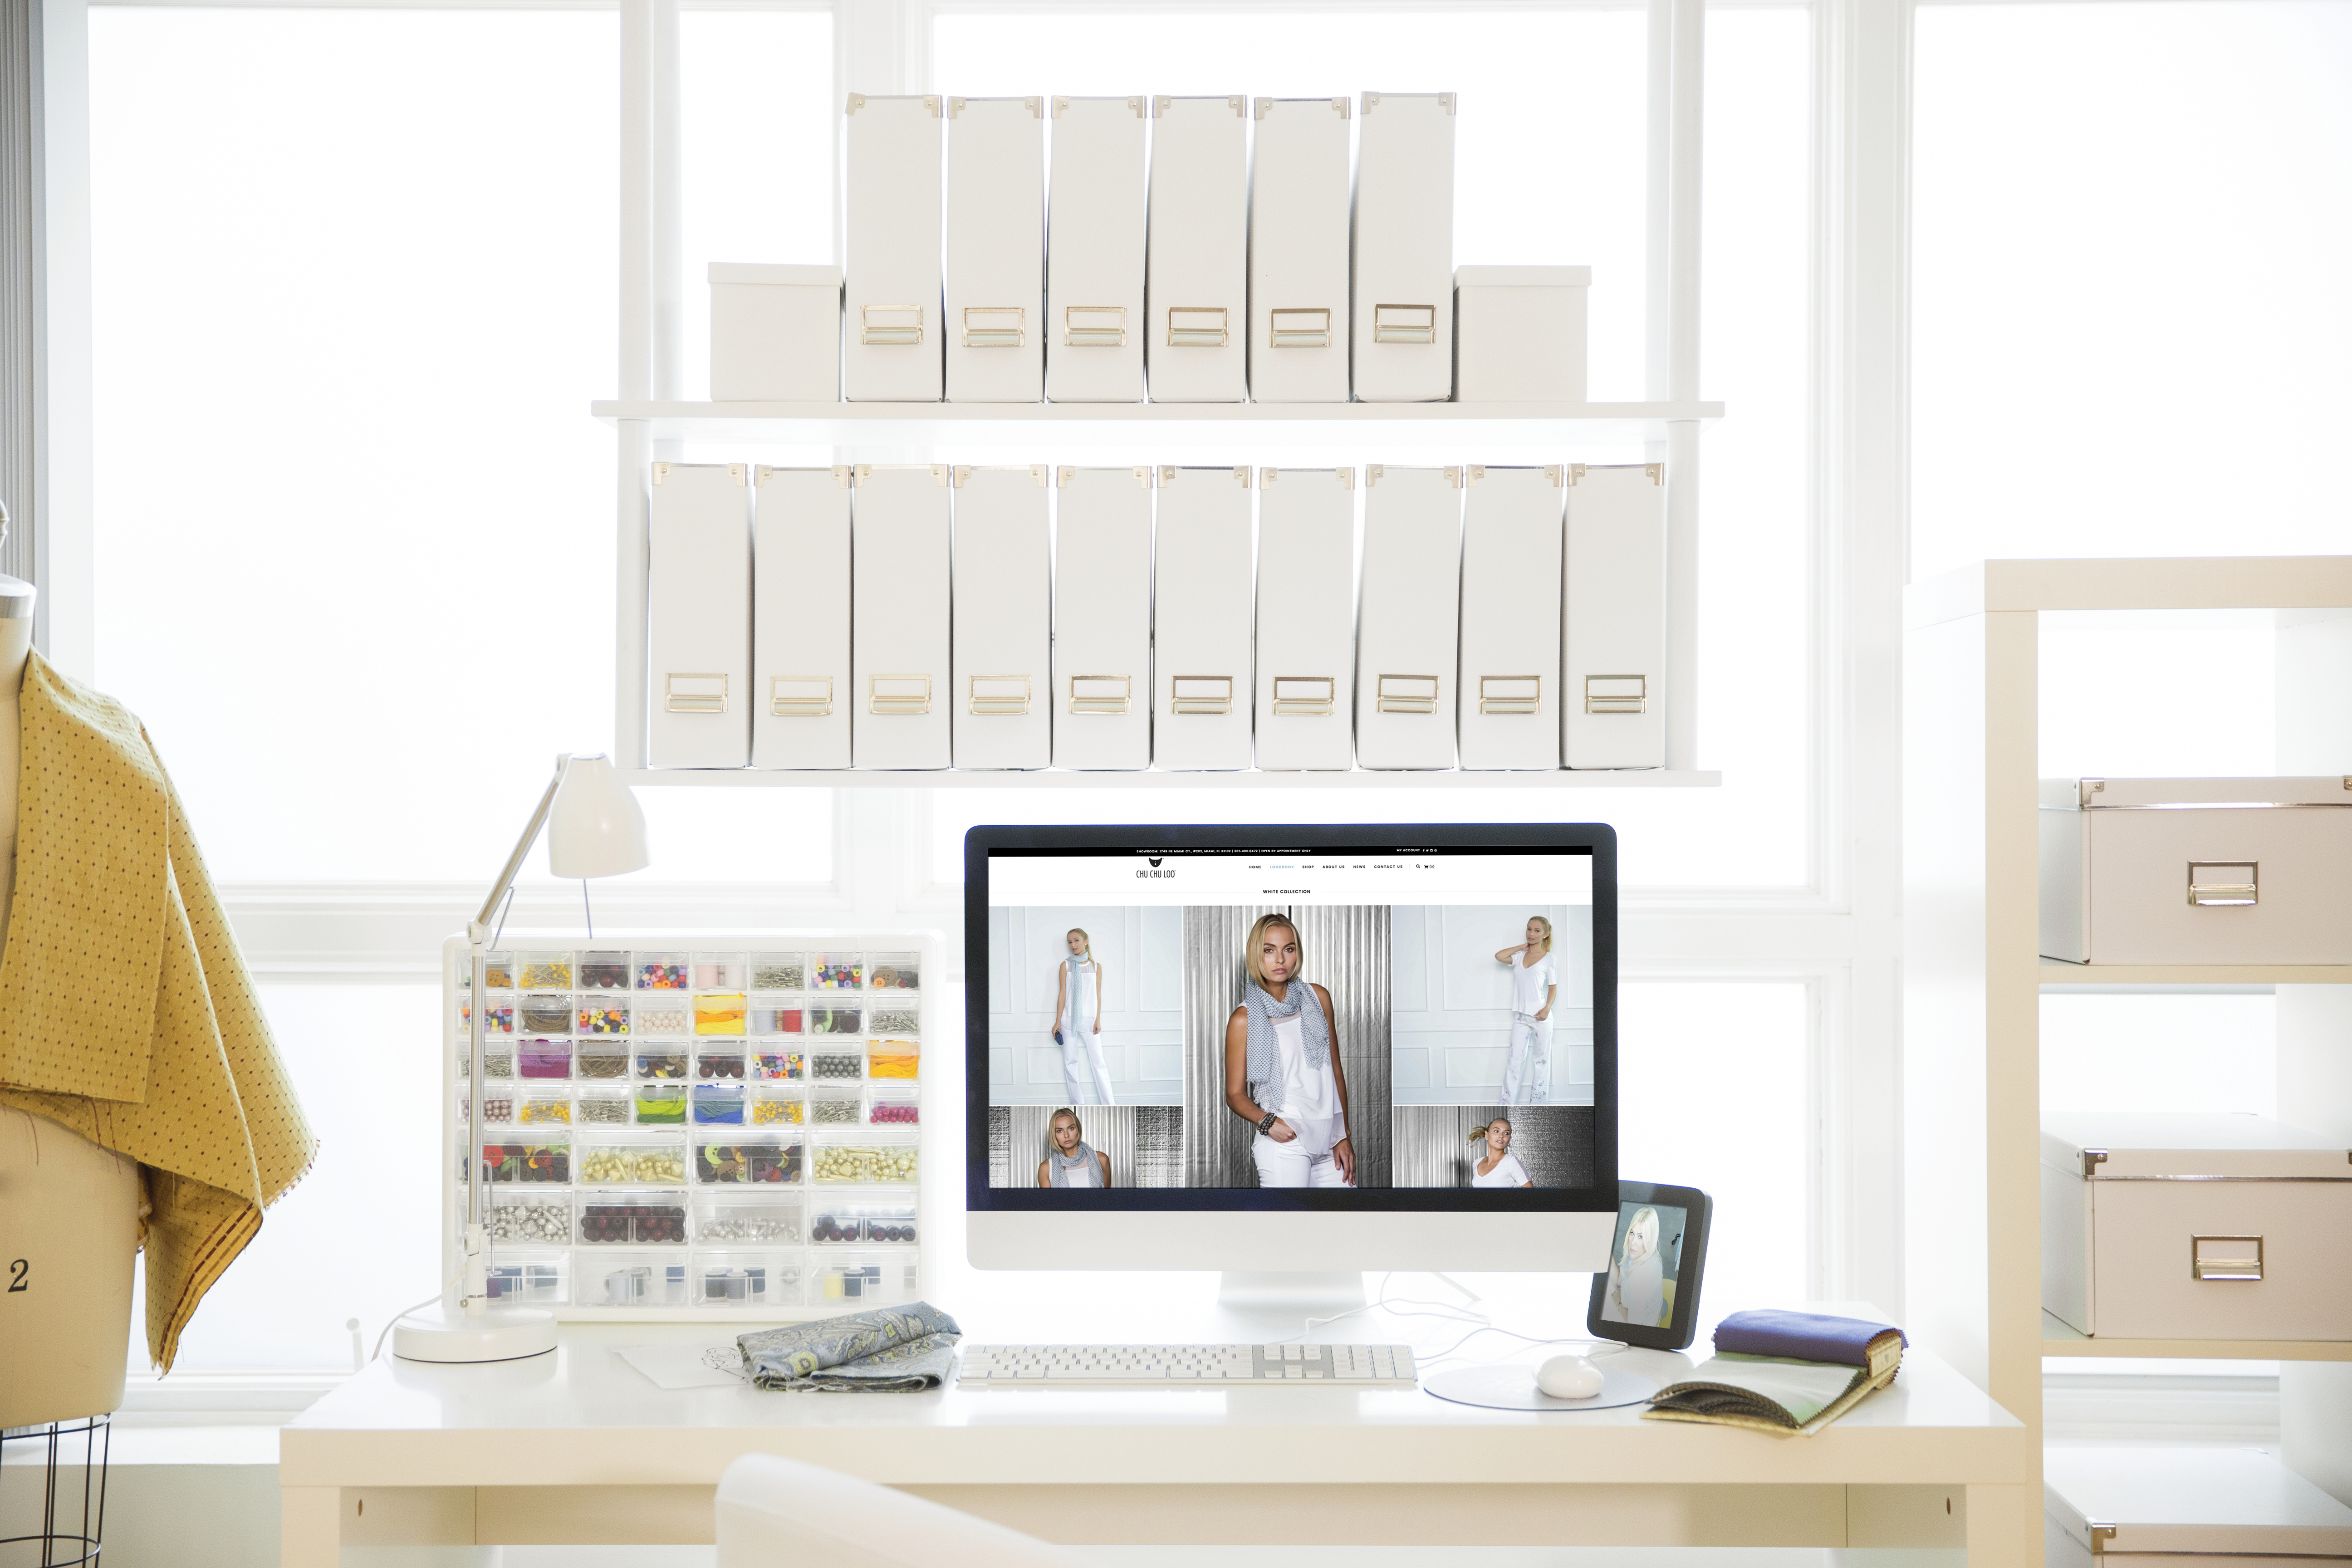 Design studio with fashion illustration designs on computer monitor with mannequin, fabric samples and no people.